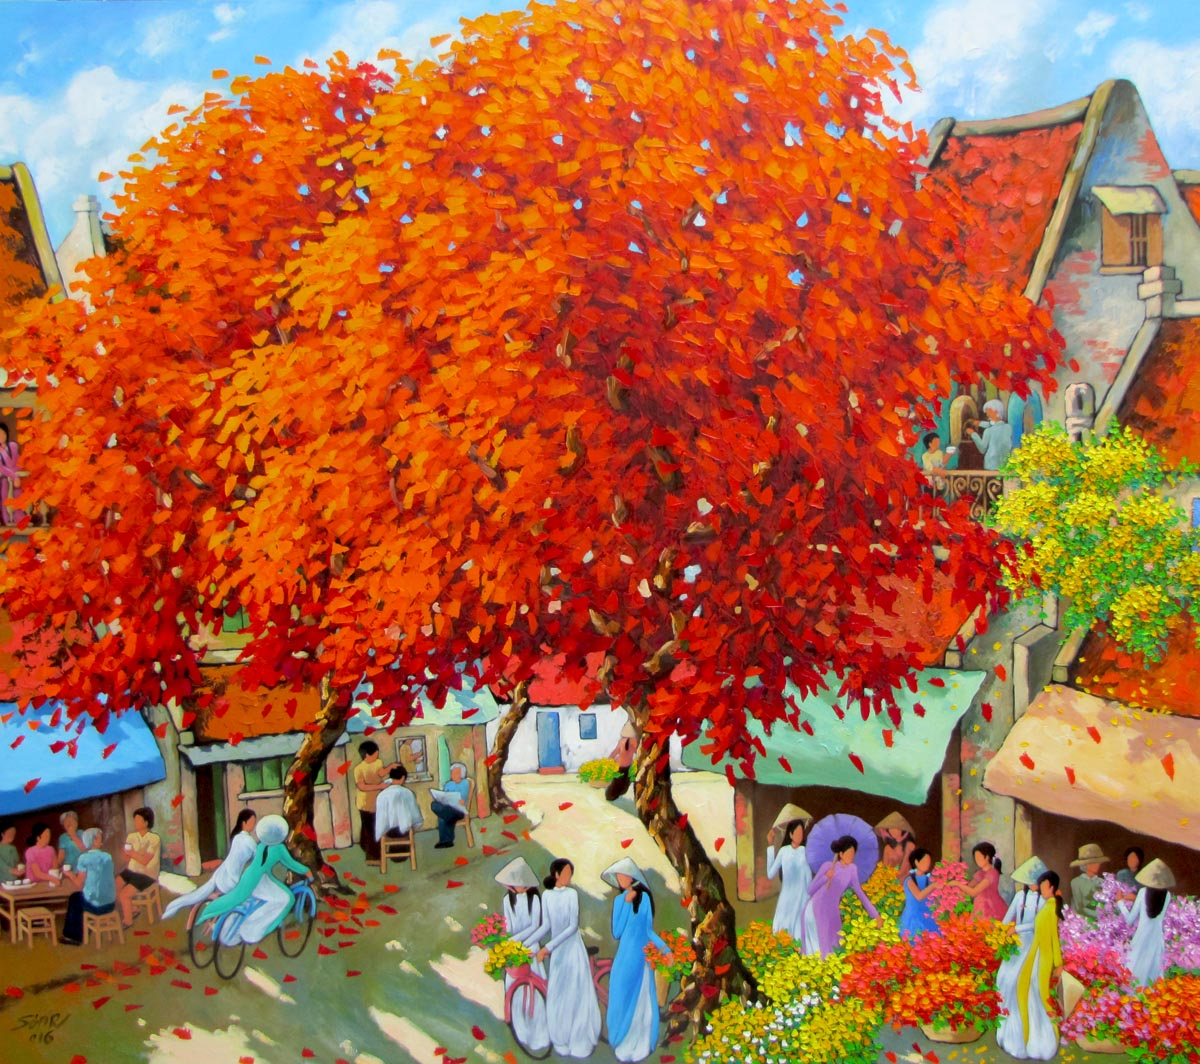 Duong Ngoc Son-Blossom trees in Summer-140x160cm